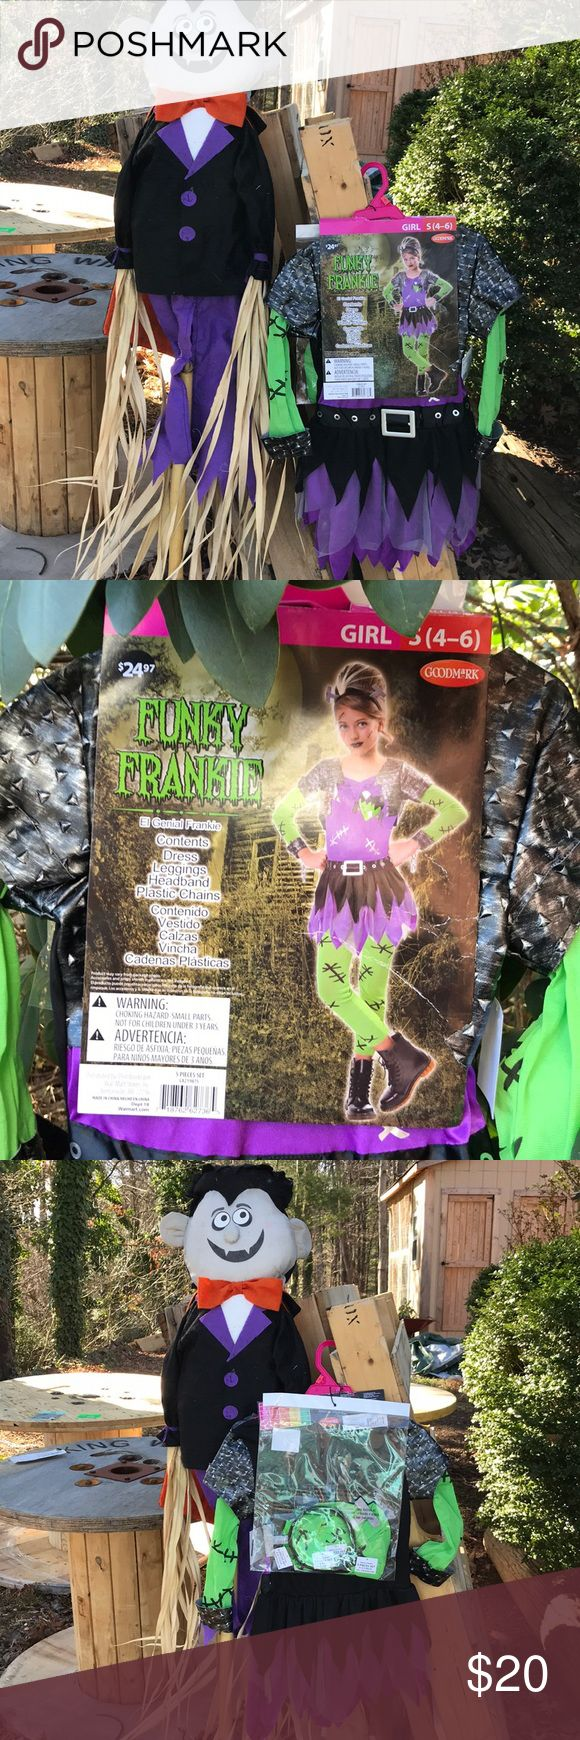 "NWT Funky Frankie 5 pc Halloween Costume S 4/6 New with tags girls Goodmark Funky Frankie Halloween Costume is size girls S (4-6). 5 piece costume consists of dress, leggings, headband and plastic chains. Dress is purple with a faux silver attached jacket. Sleeves and leggings are green with stitches. Fits height 39-48.5"". Chest 26"". Waist 23"".  Hip 26.5"". Made in China. Dress 100% polyester. Sleeves & leggings 100% nylon. Goodmark Costumes Halloween"